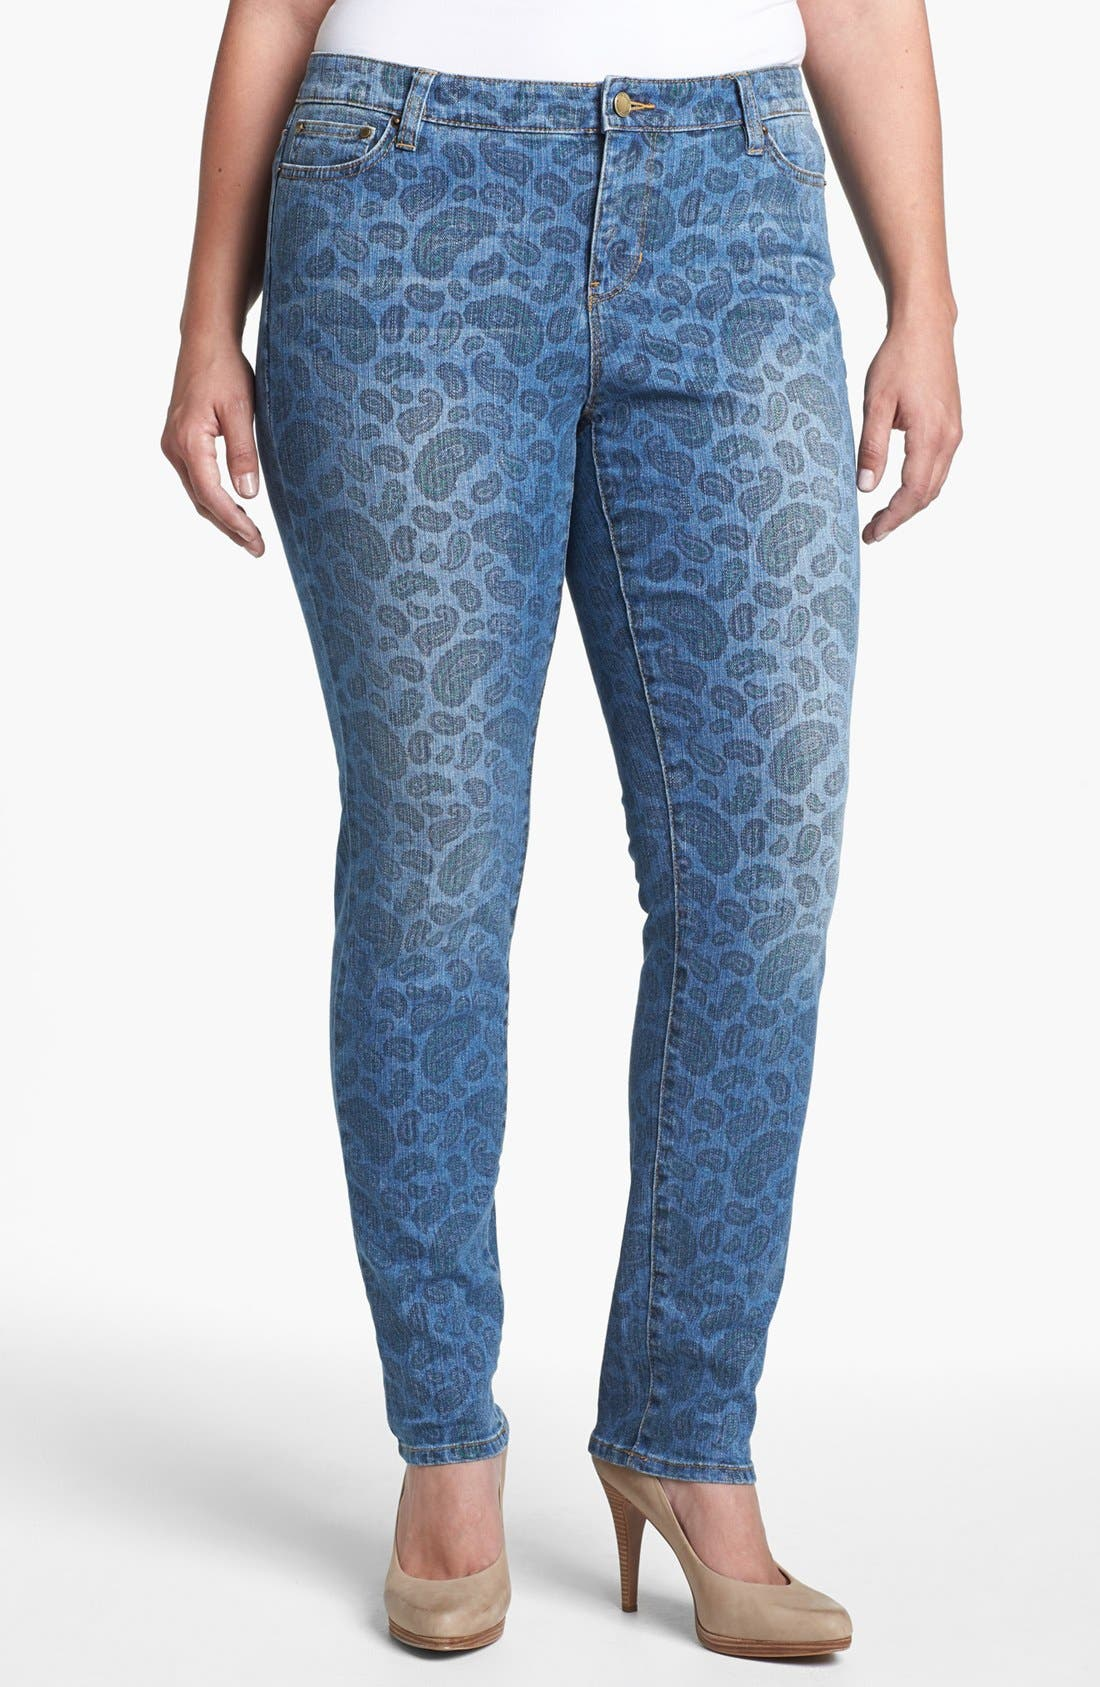 Alternate Image 1 Selected - MICHAEL Michael Kors Paisley Print Jeans (Plus Size)